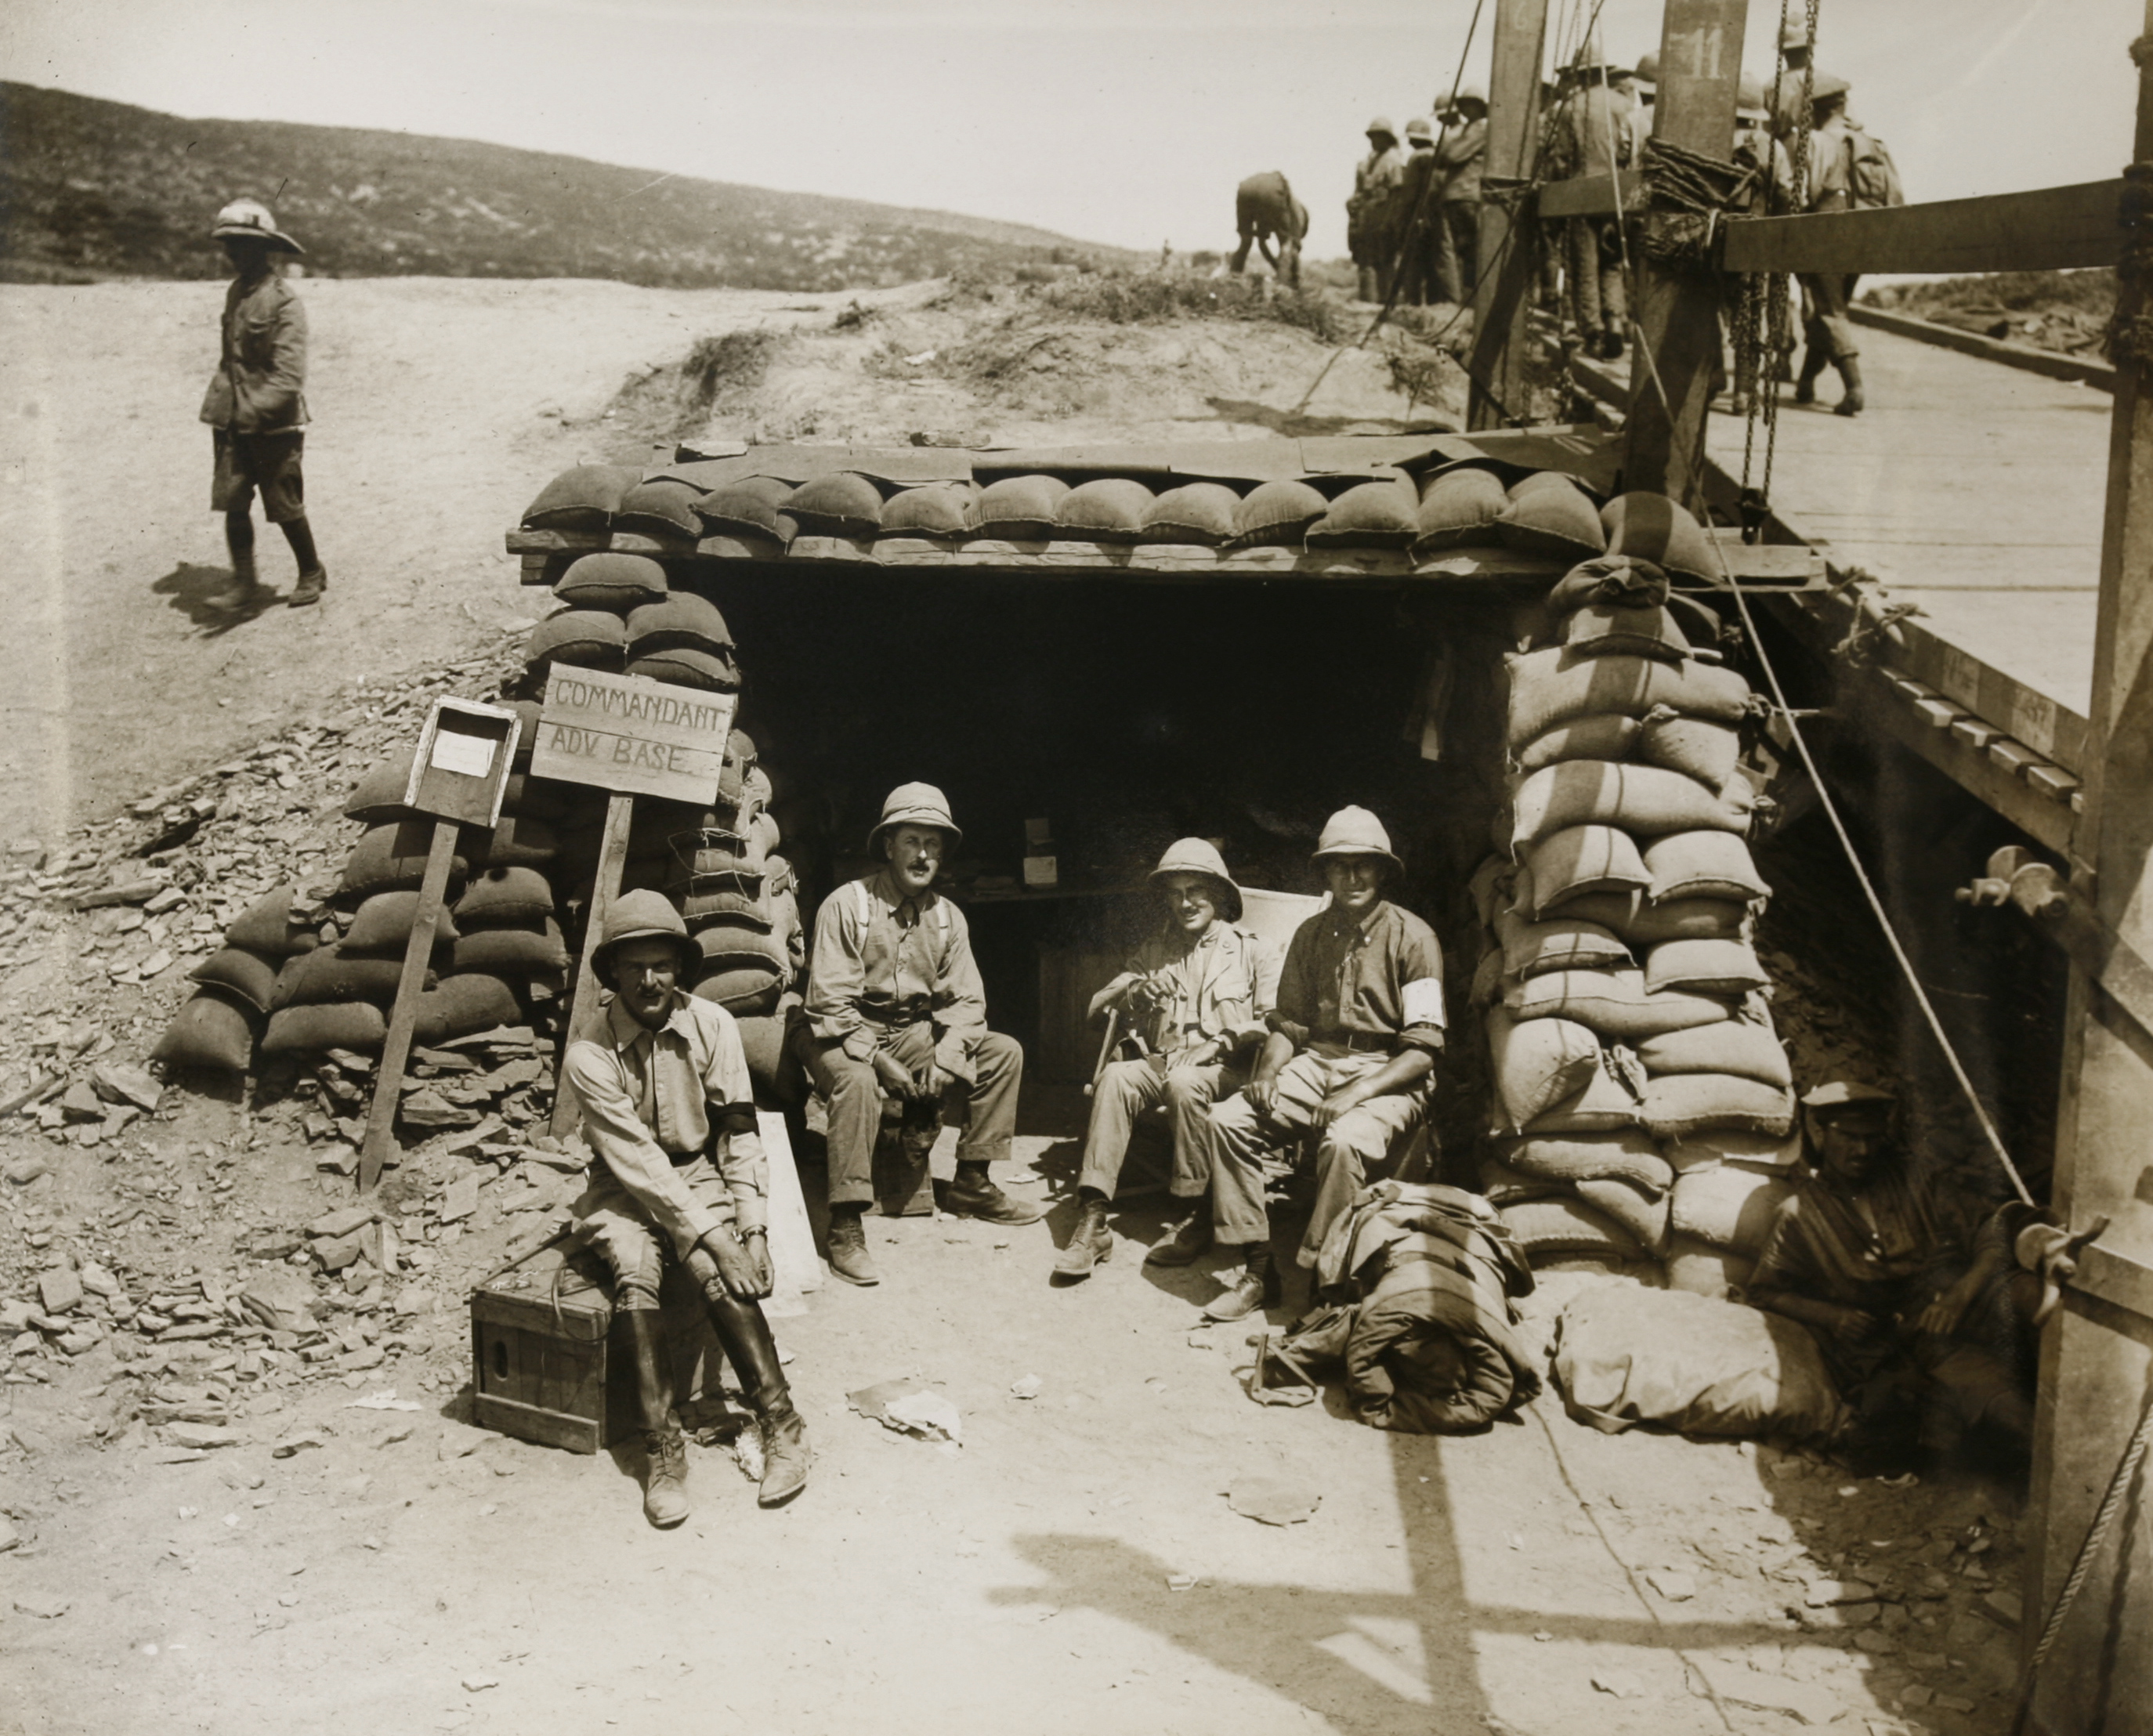 Why did the Gallipoli campaign of 1915 fail - Assignment Example